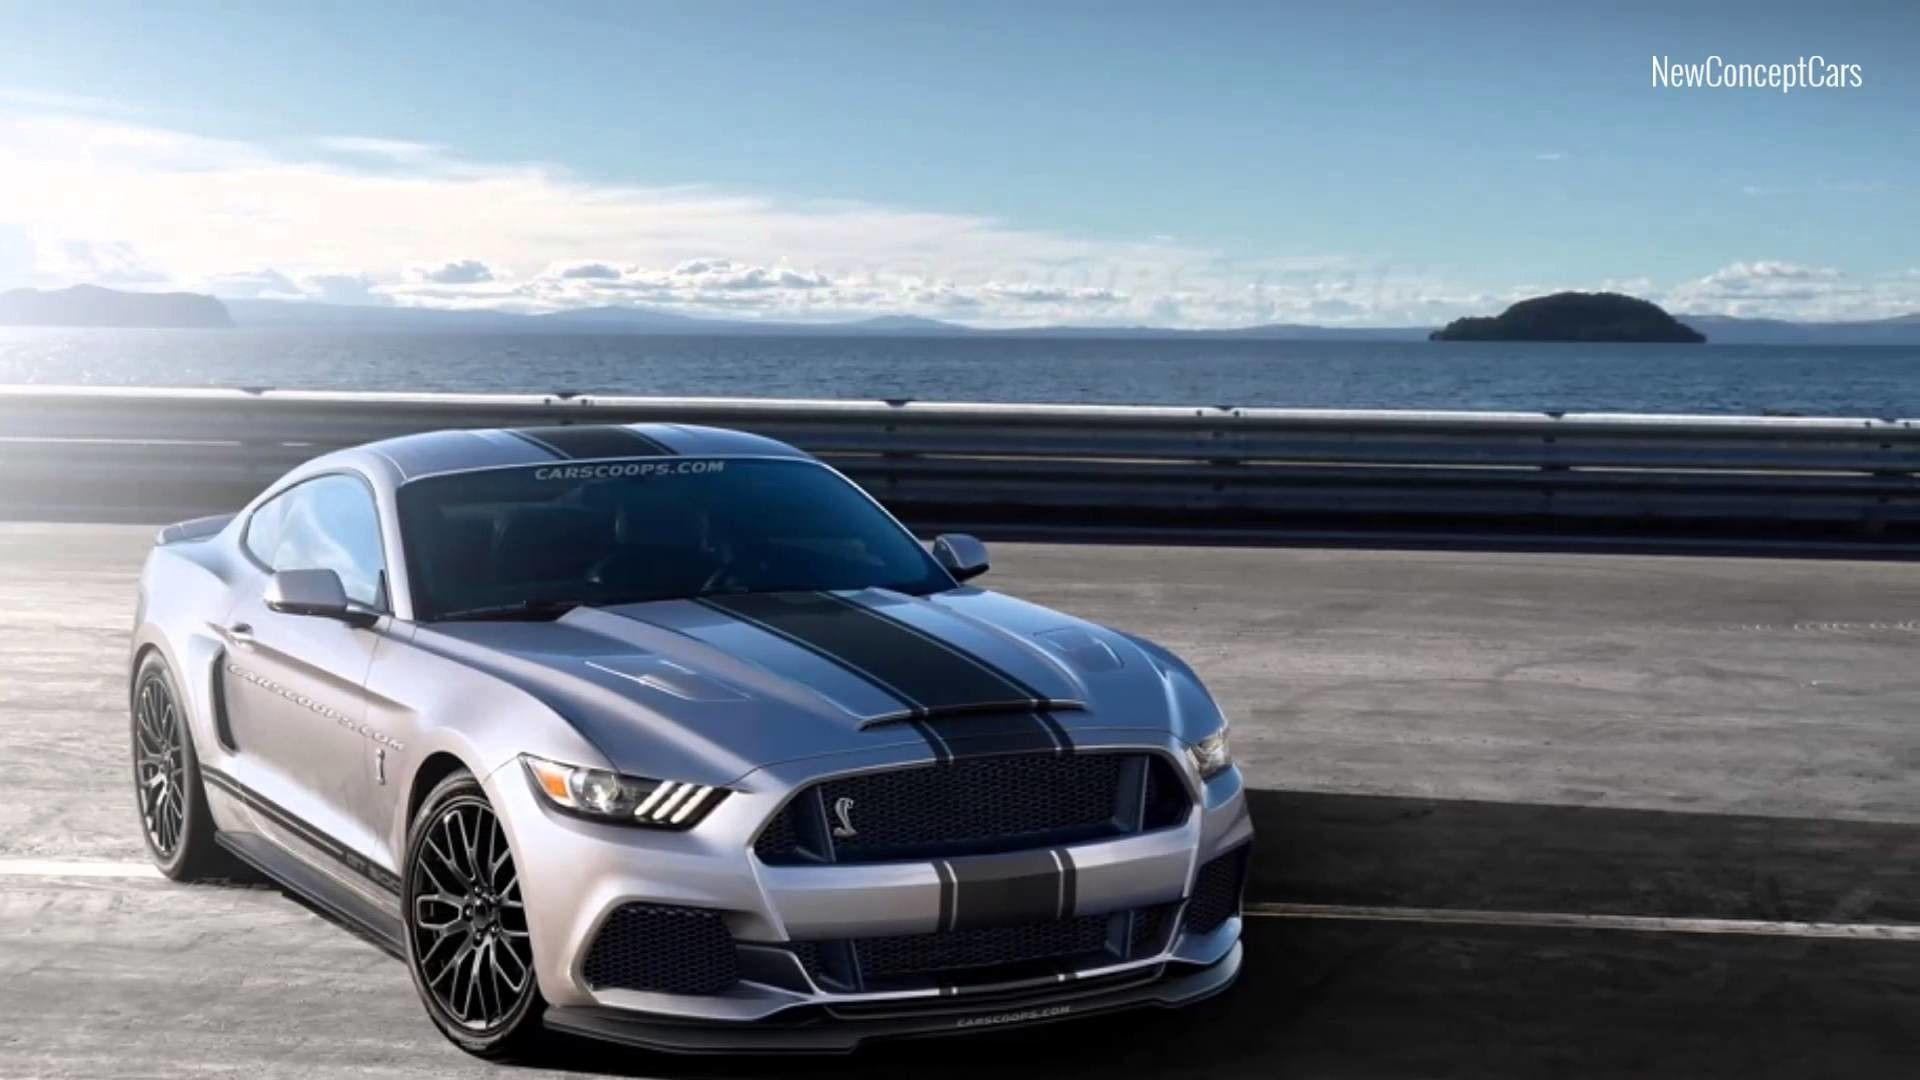 2018 Ford Mustang Shelby Wallpapers